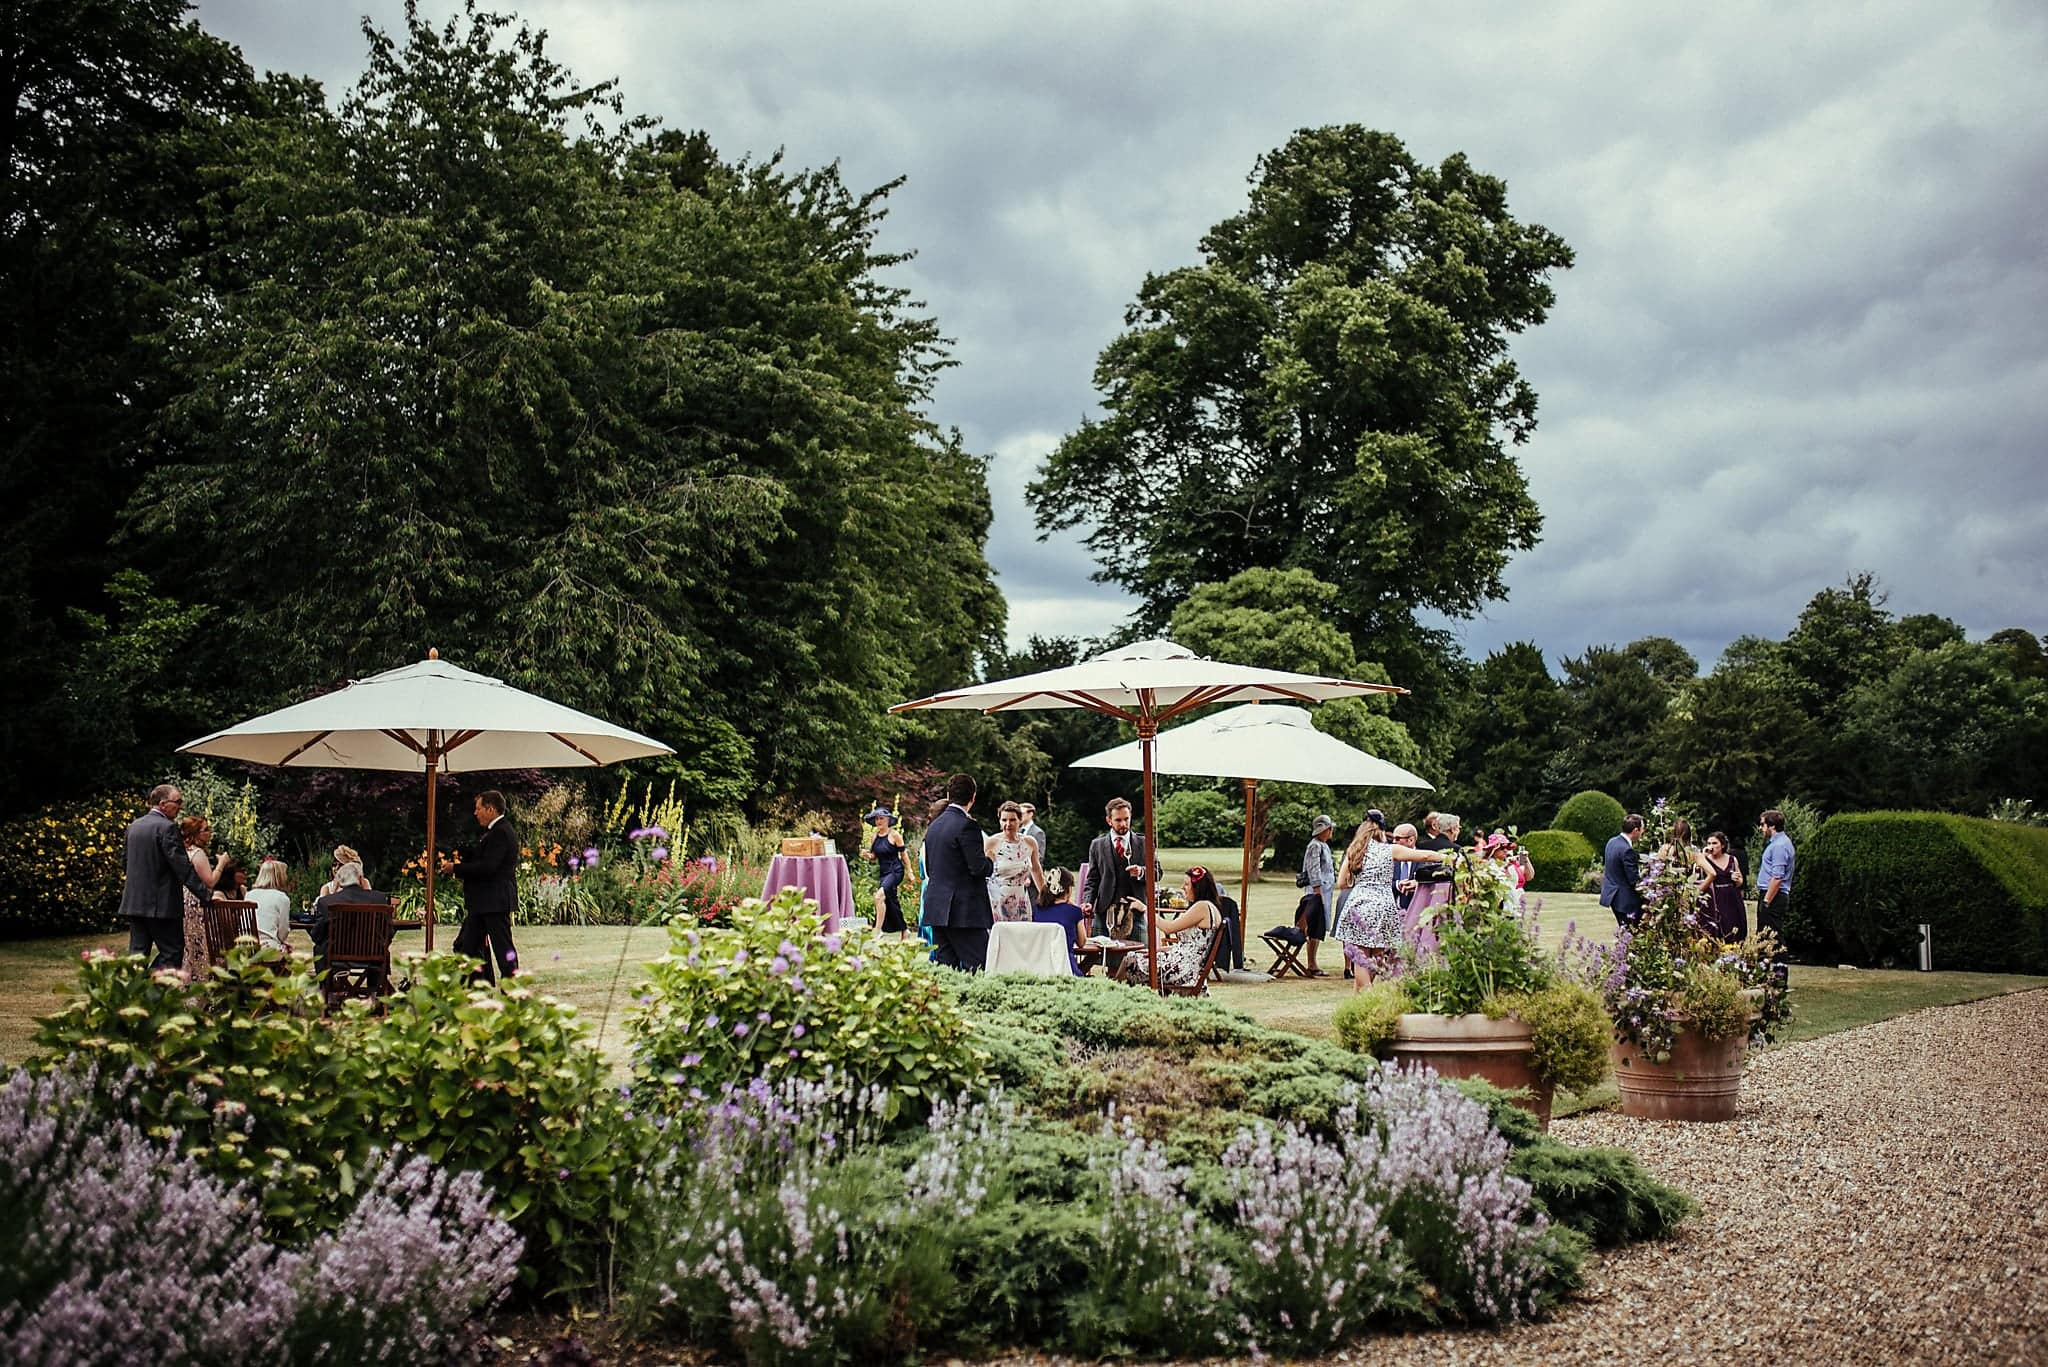 Guests mingle on the lawns at Dorney Court